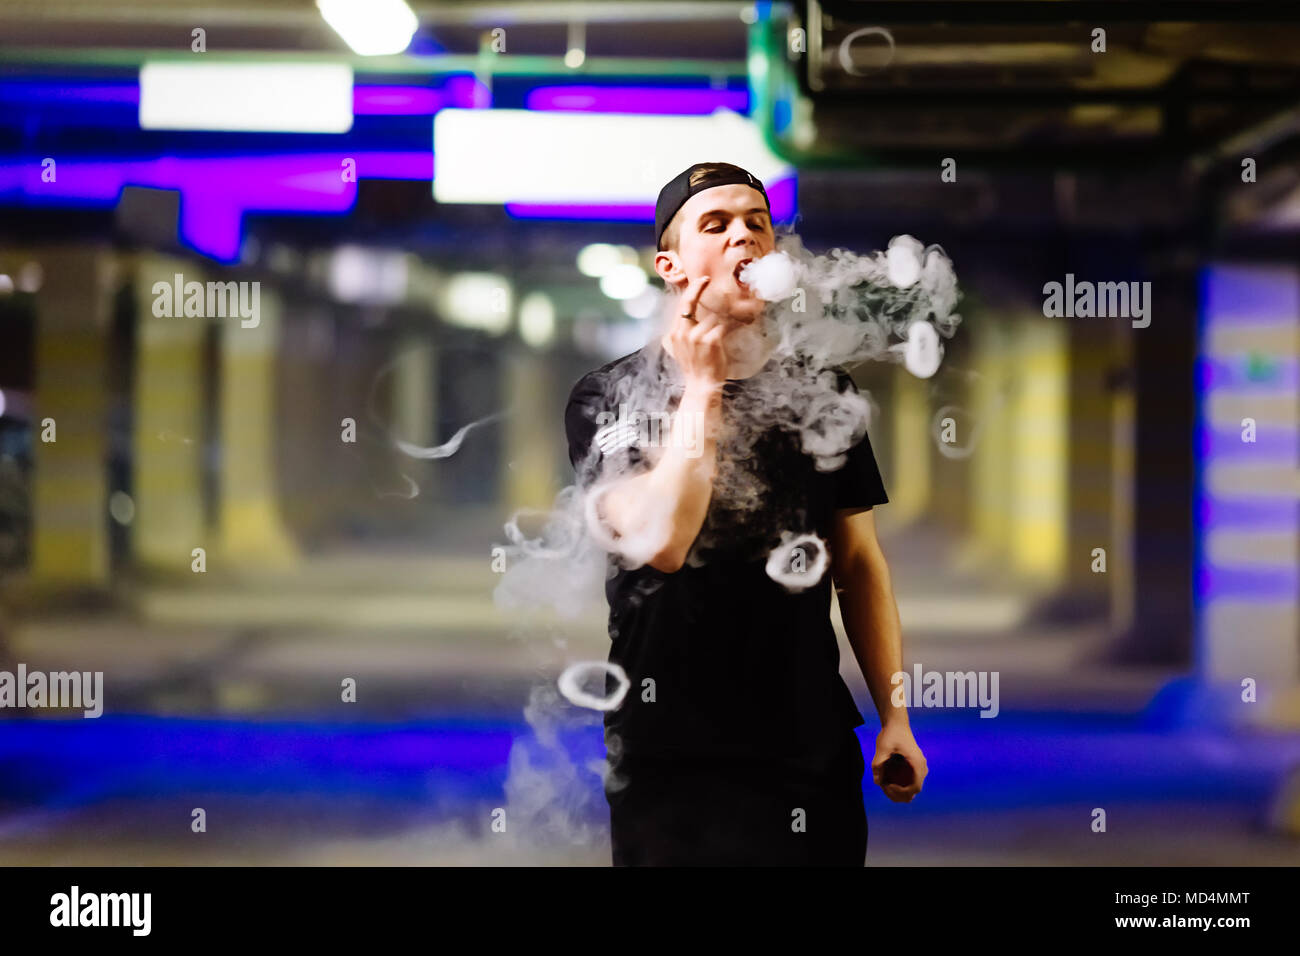 Man in cap smoke an electronic cigarette performing various kind of vaping tricks Stock Photo